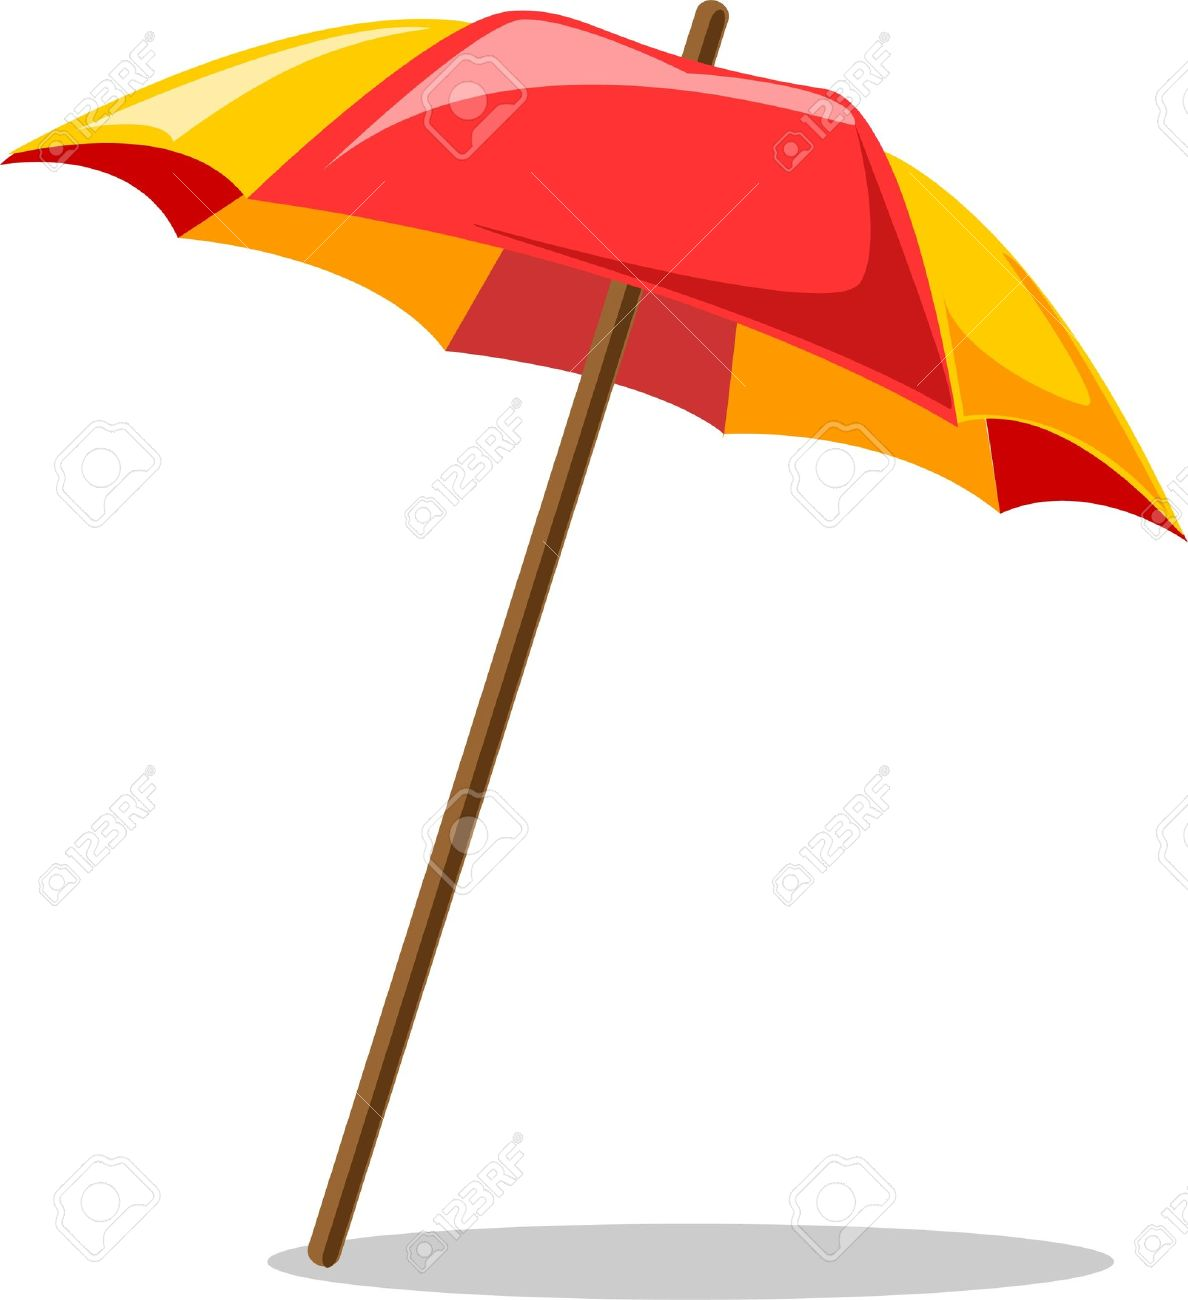 Image of: Beach Umbrella With Beach Umbrella Stock Vector 12480629 Beach Umbrella Royalty Free Cliparts Vectors And